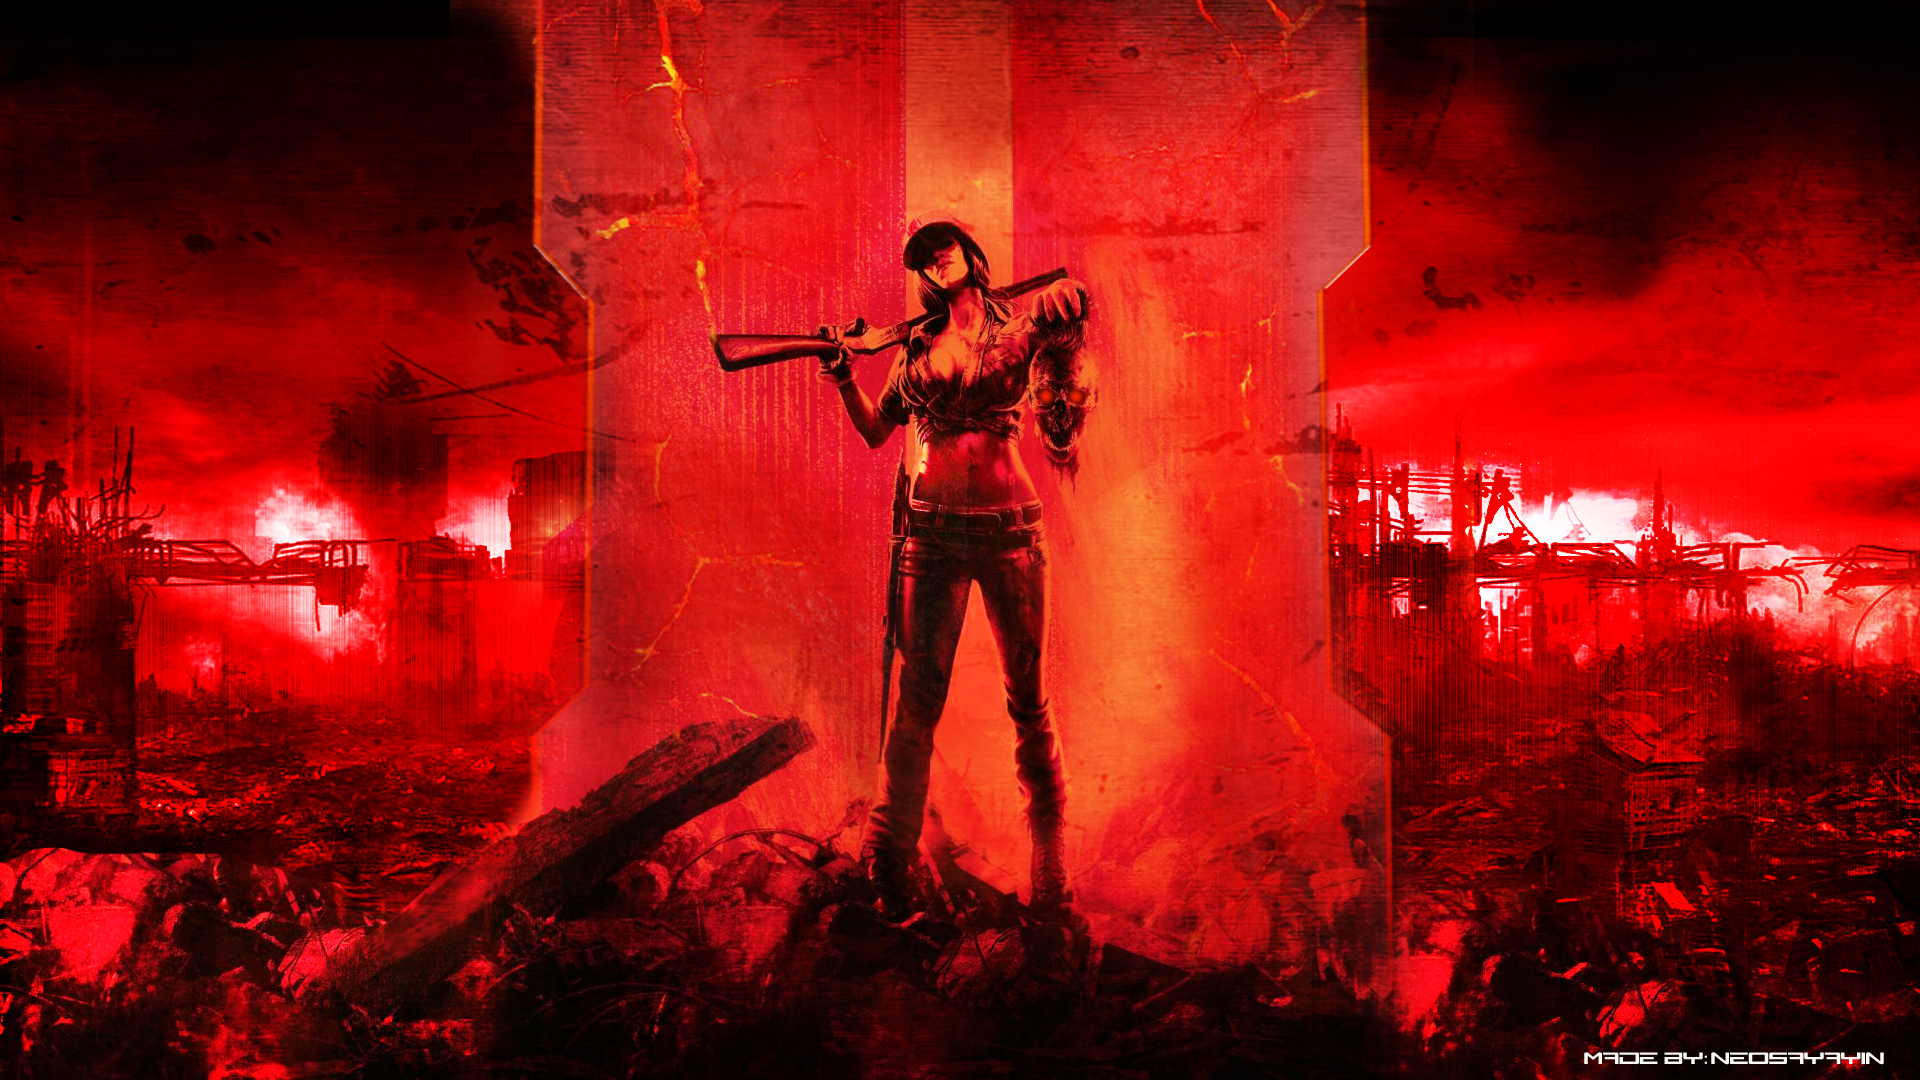 call of duty  black ops 2 zombies wallpaper by neosayayin d4yi9i4 1920x1080